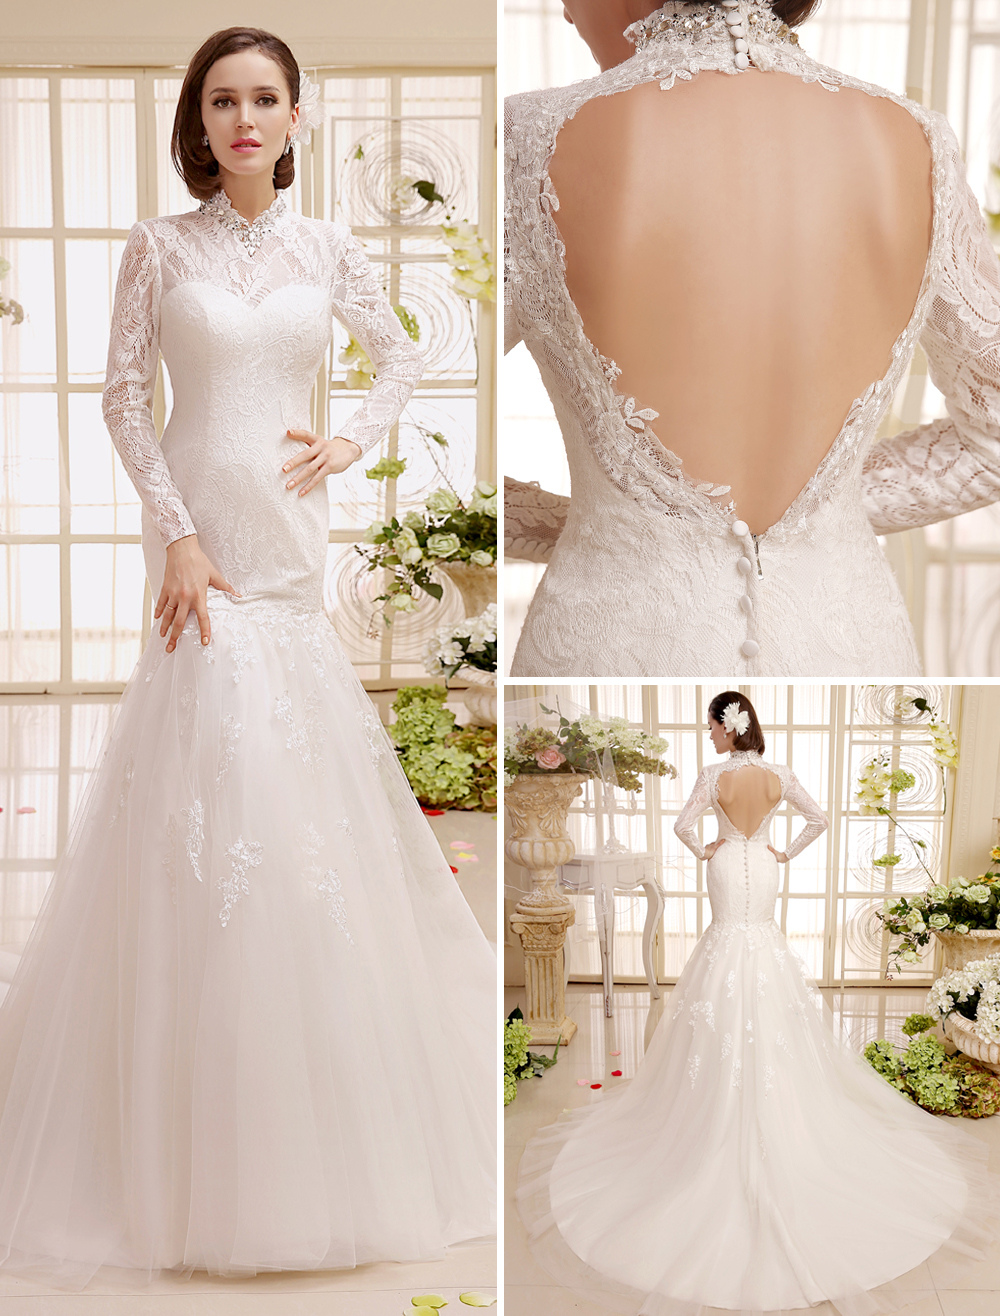 Buy Chapel Train Ivory Lace Backless Rhinestone Bridal Wedding Dress With Mermaid Stand Collar Milanoo for $169.19 in Milanoo store